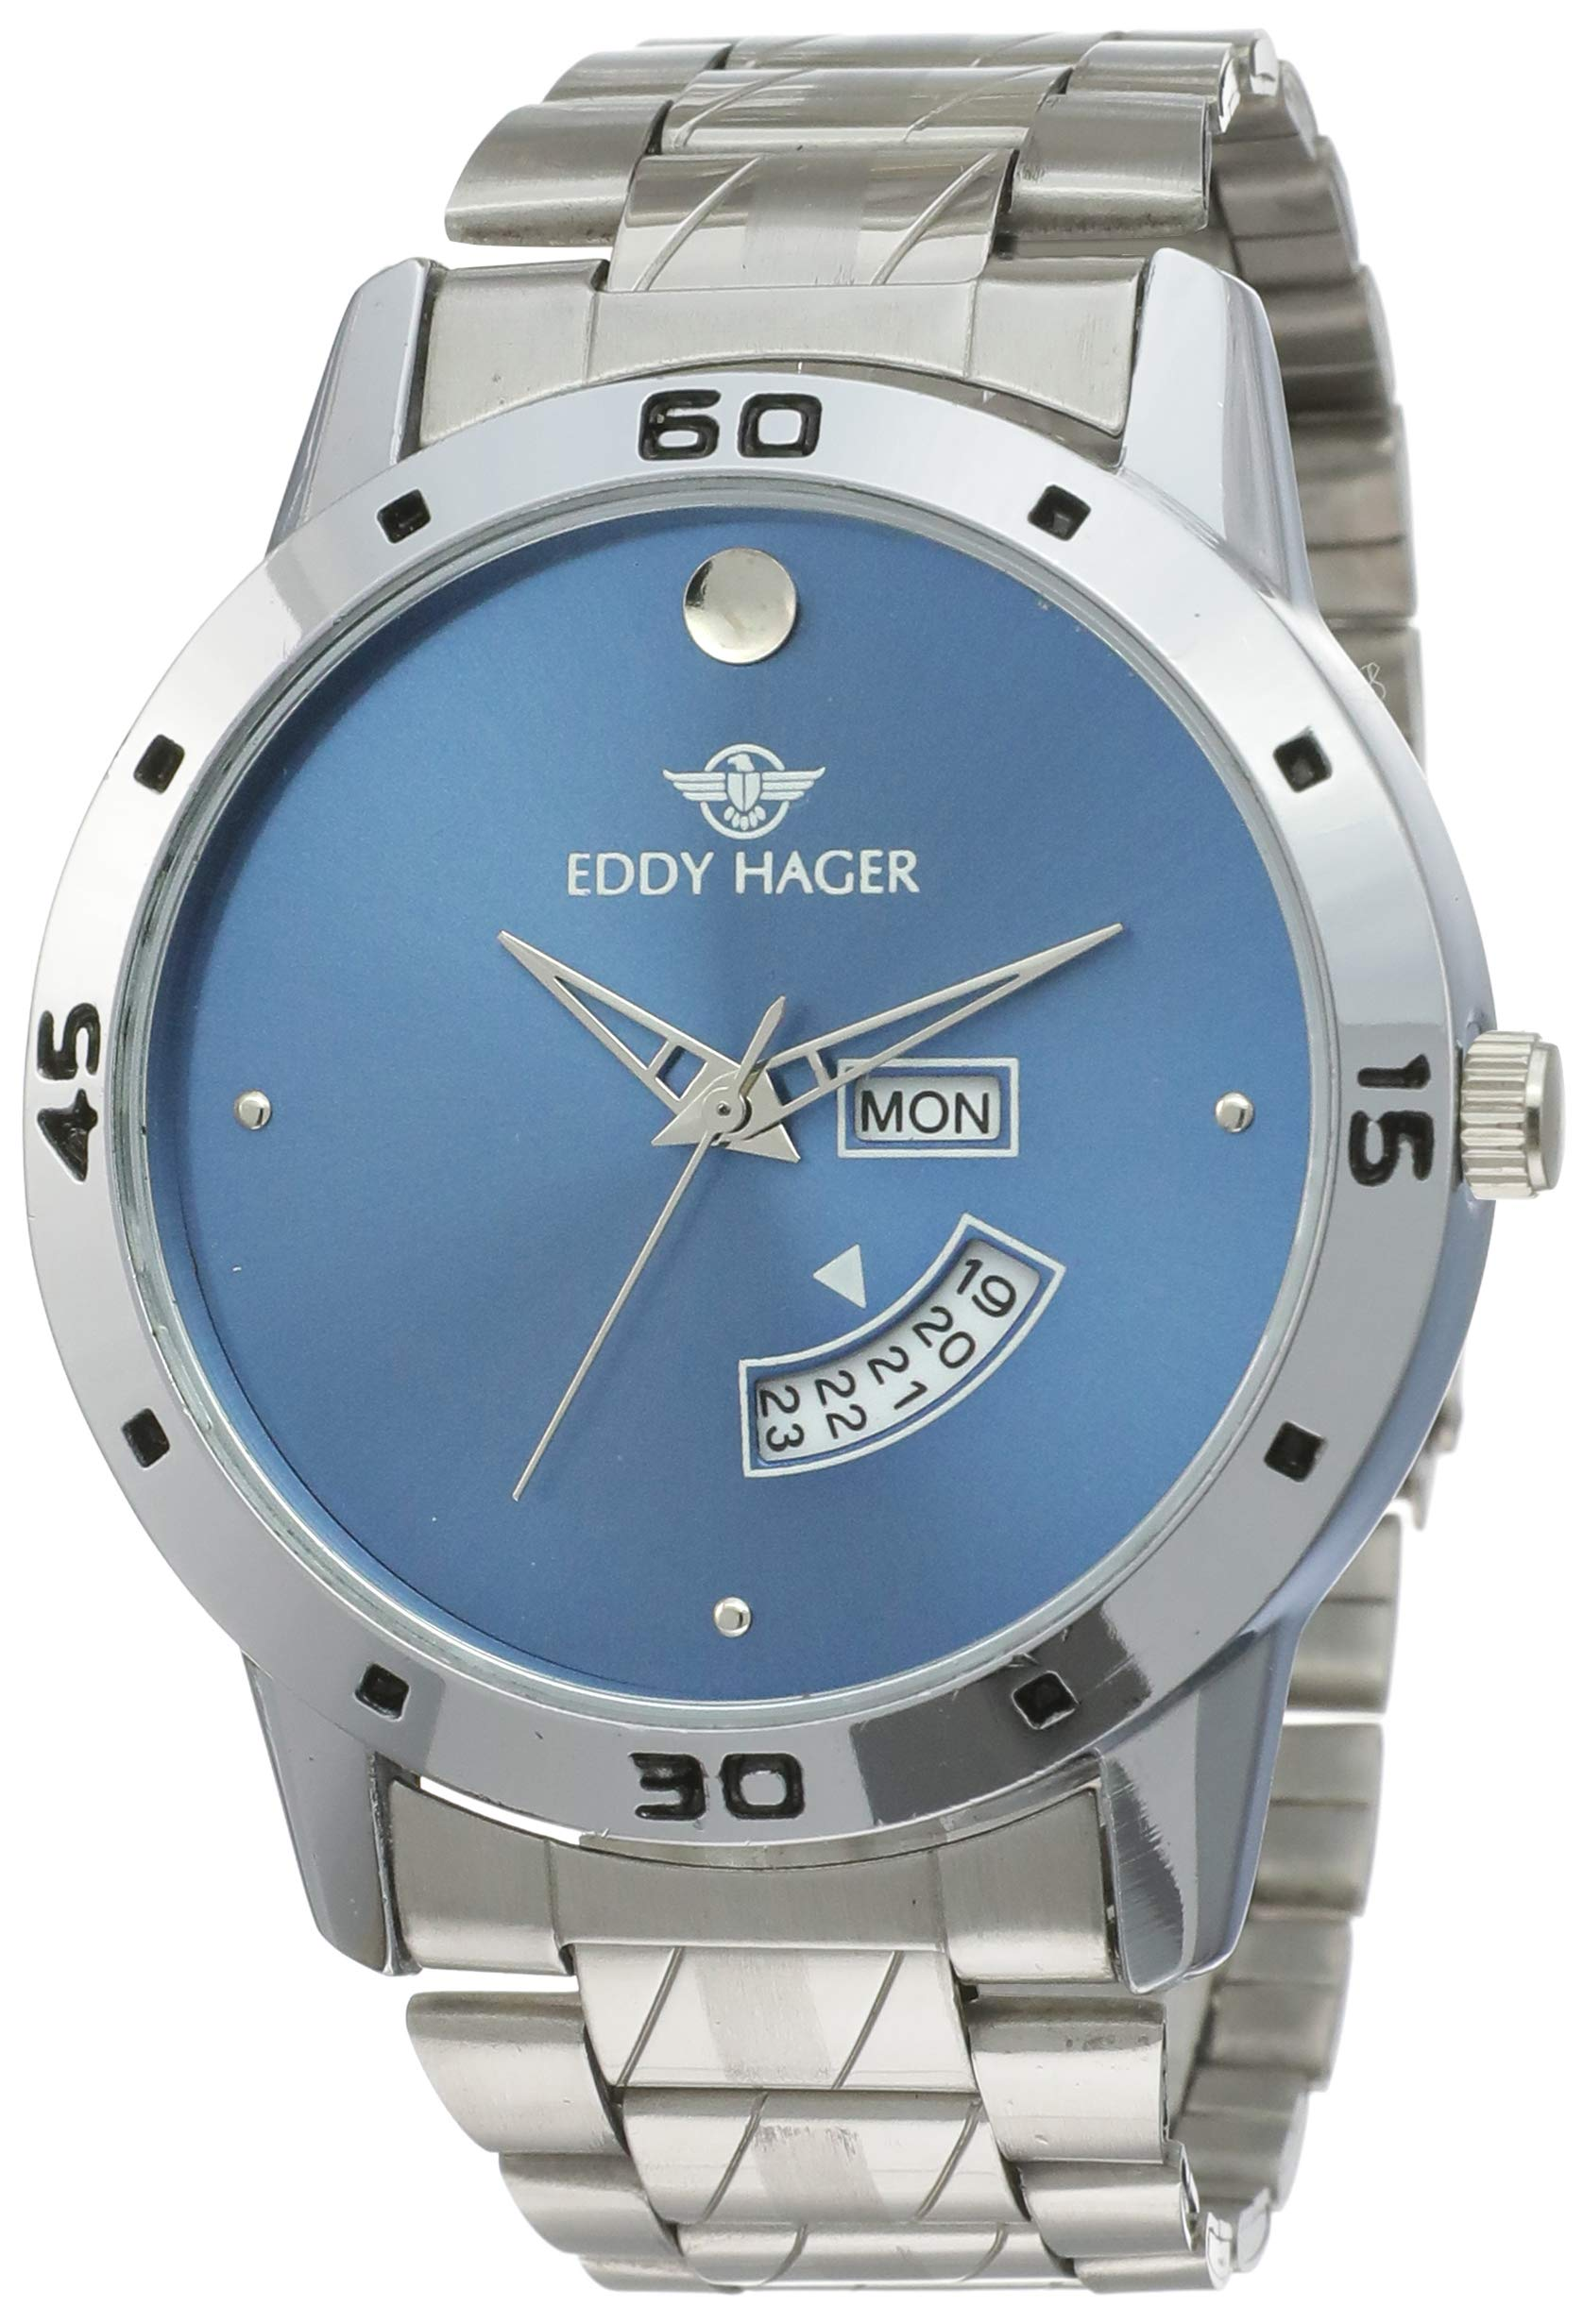 Eddy Hager Day and Date Men's Watch EH-210 product image